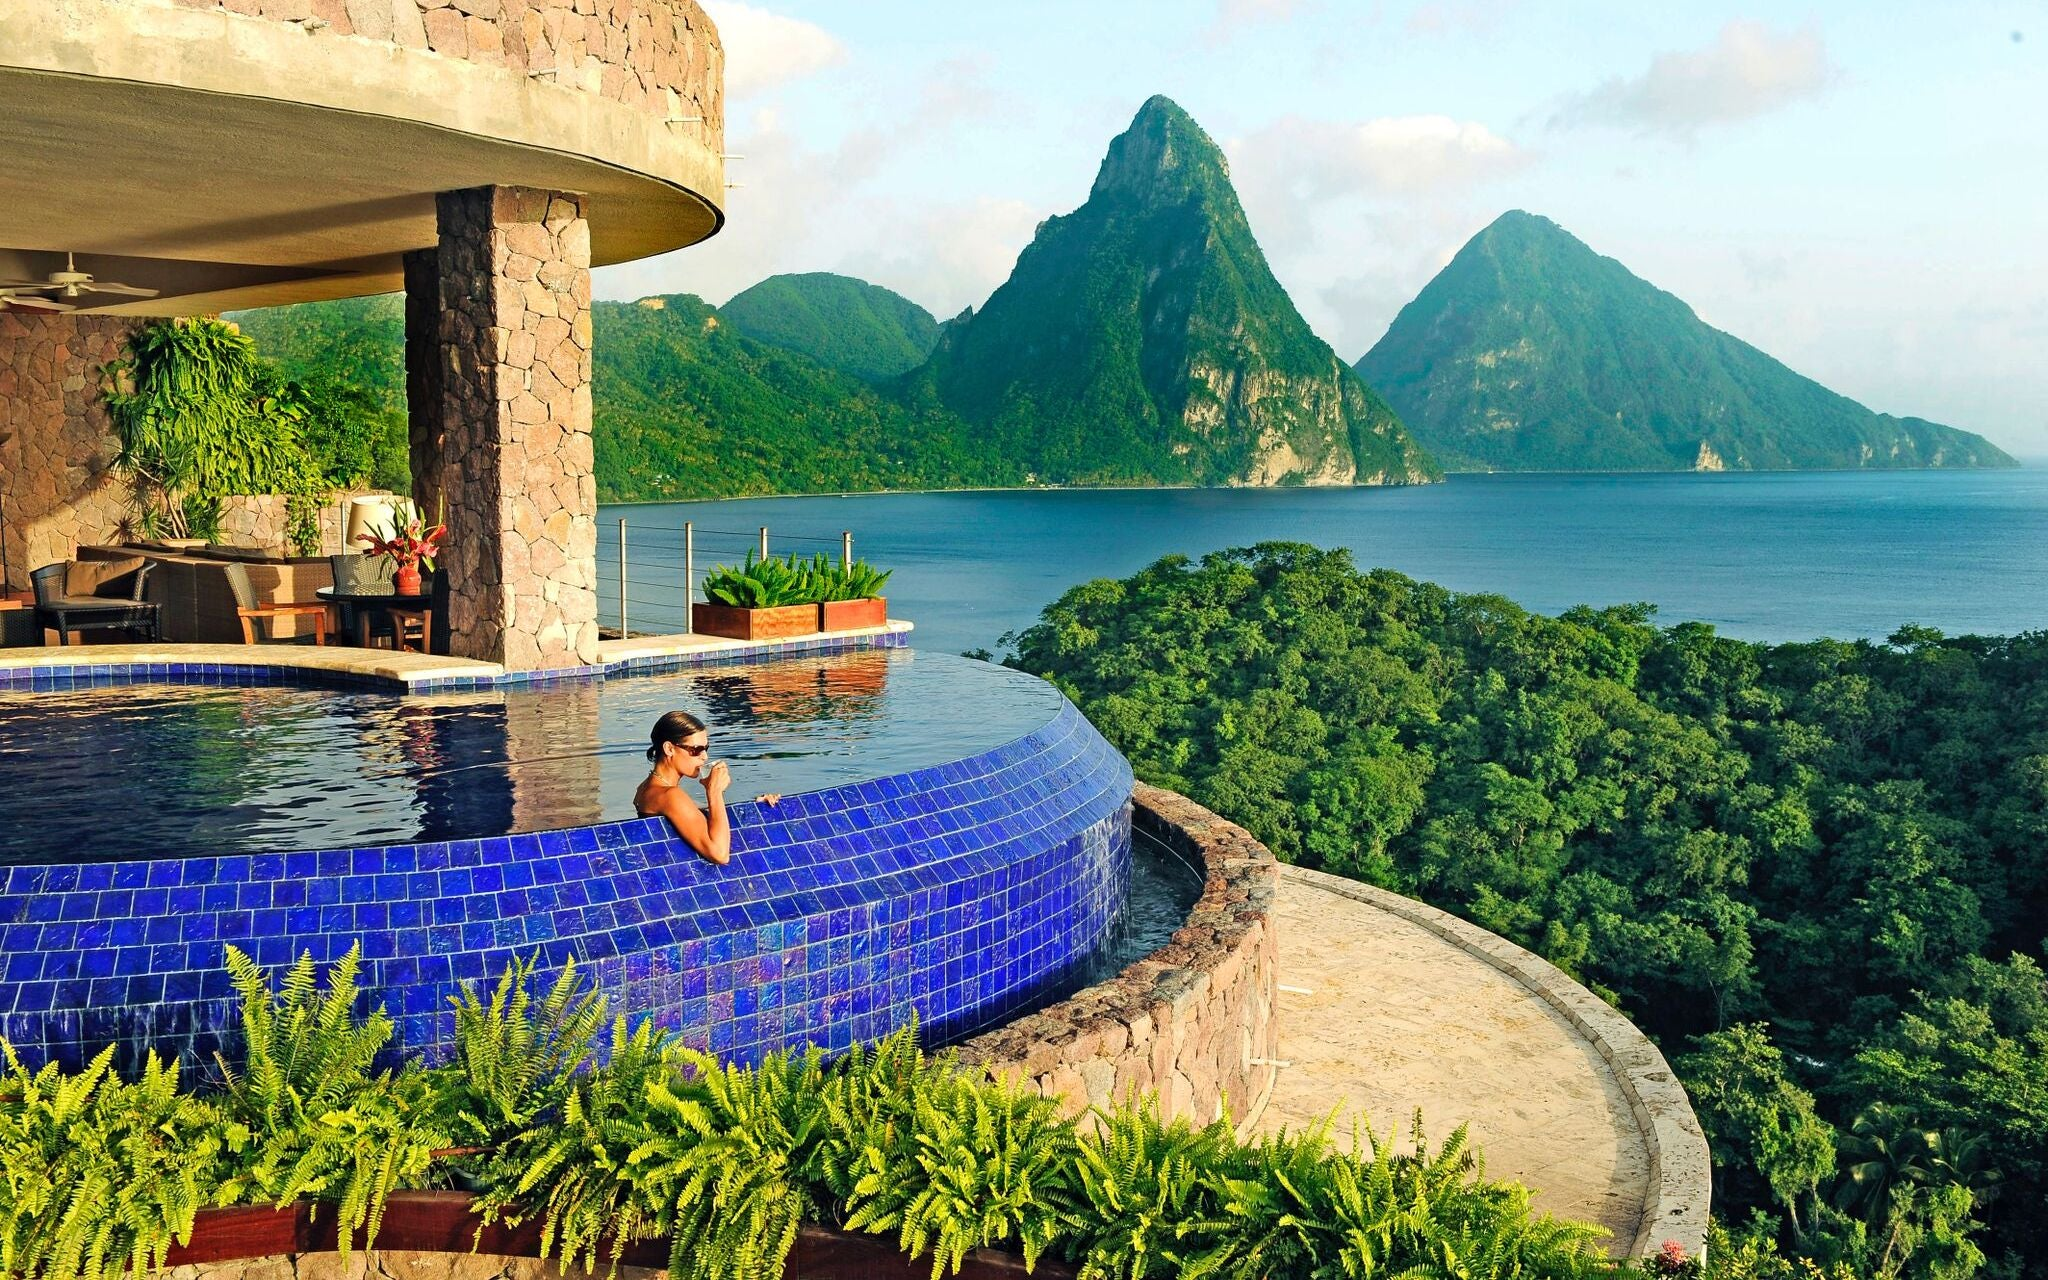 10 Best Hotel Swimming Pools Around The World - Jade Mountain - LuxDeco.com Style Guide